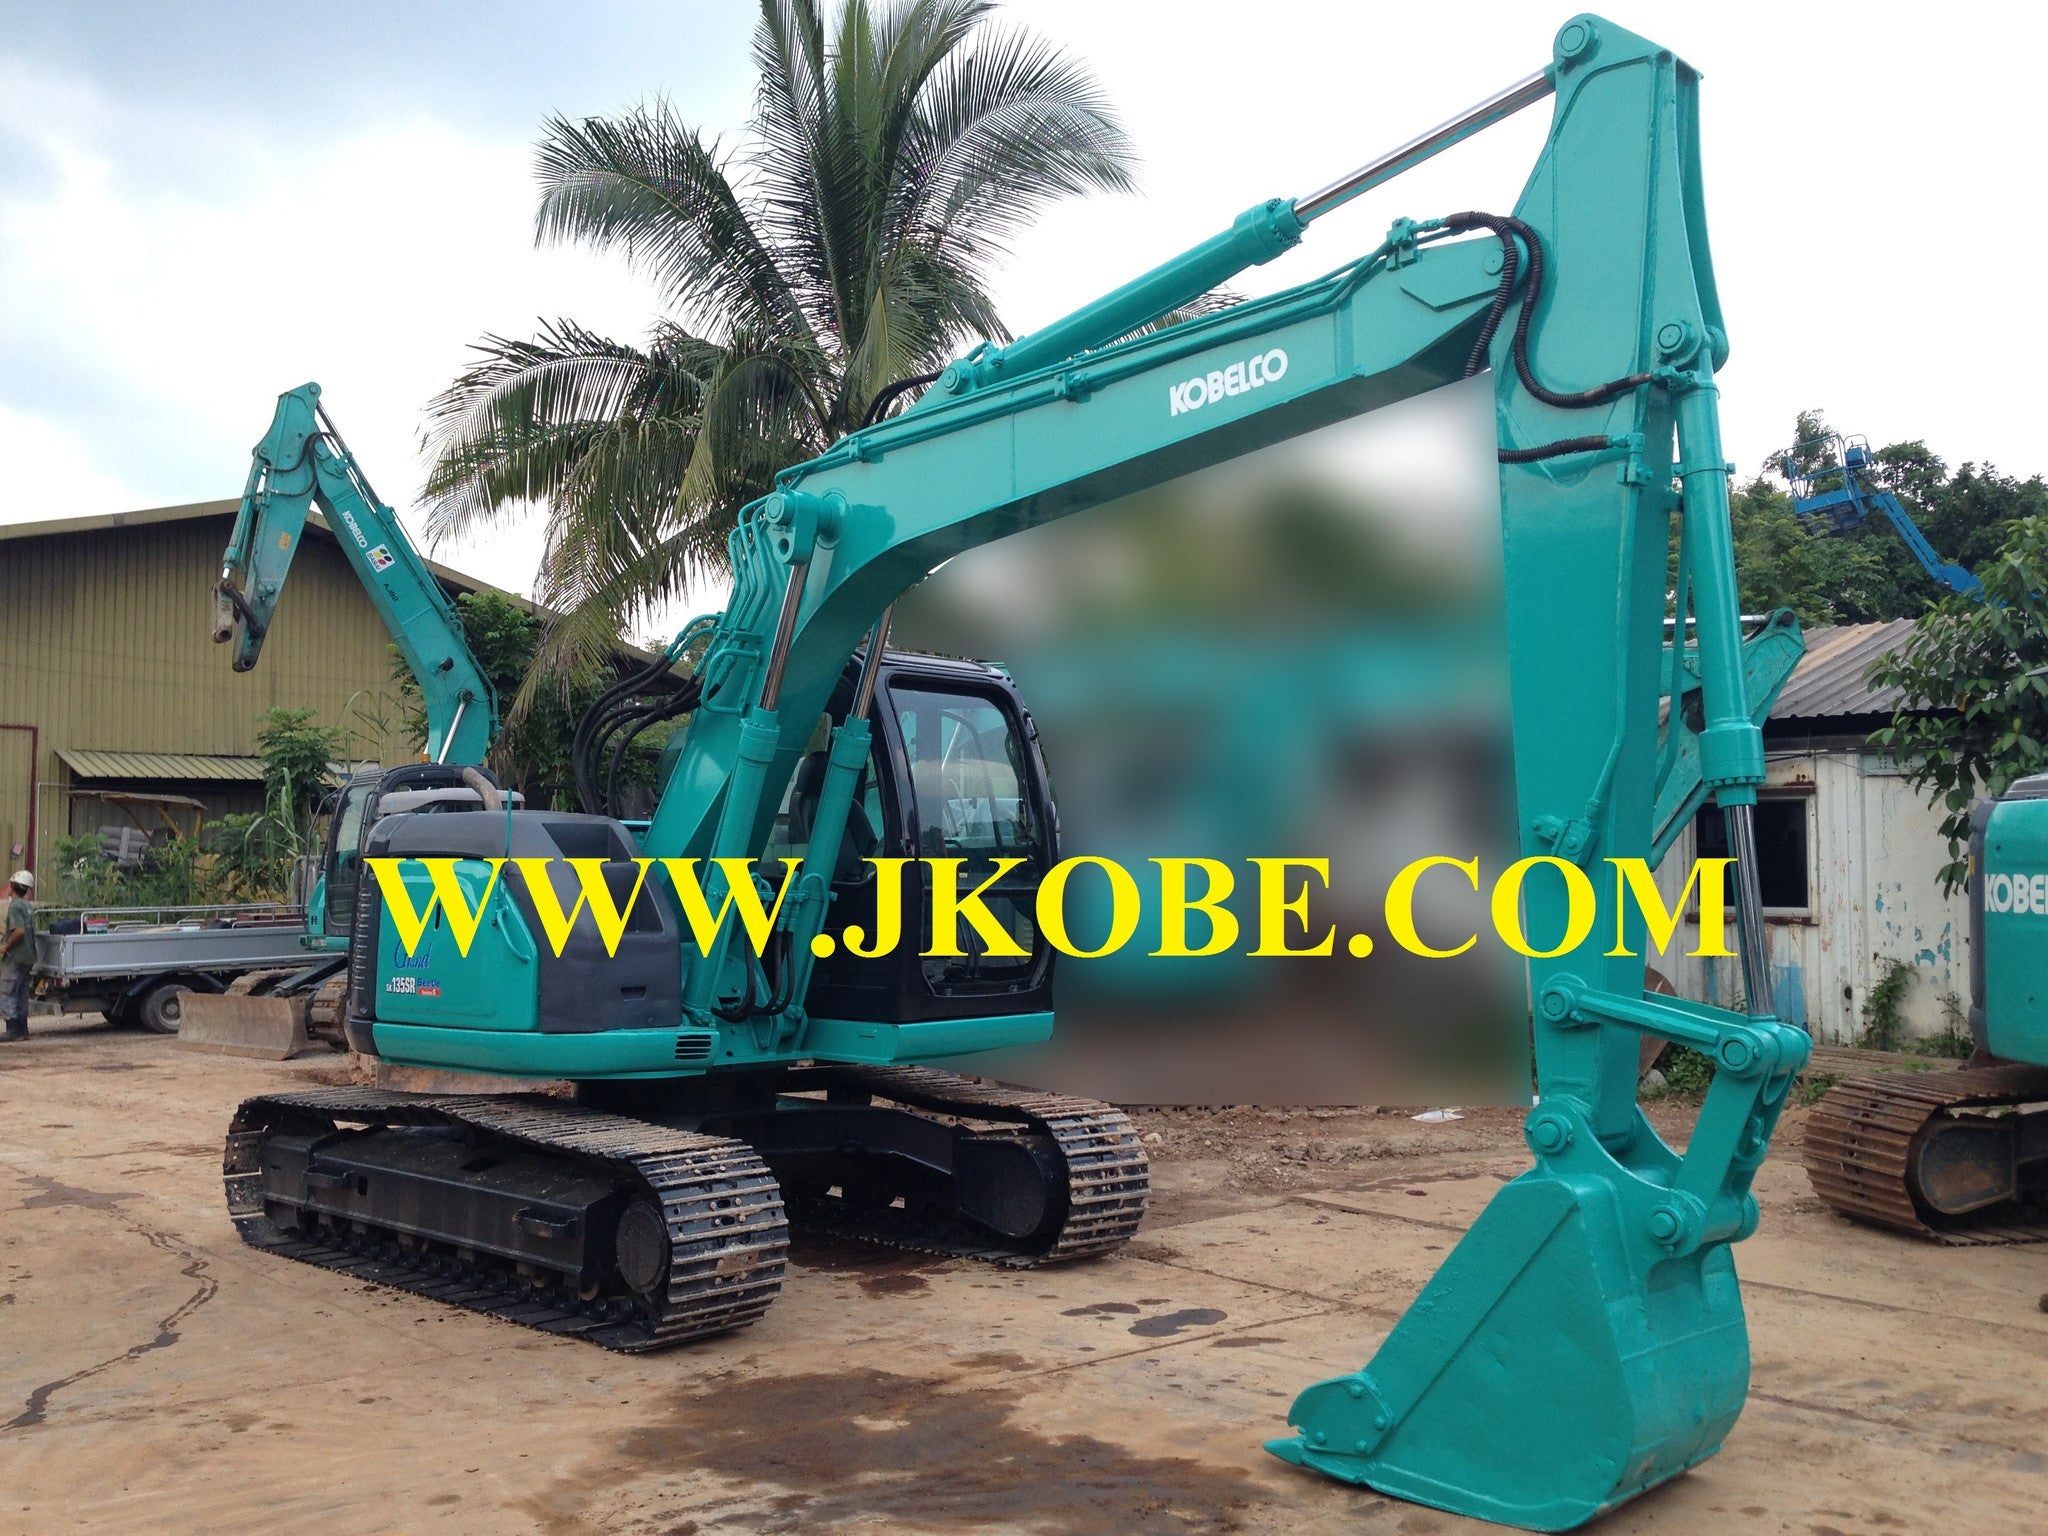 Kobelco Spare Parts In India   Reviewmotors co